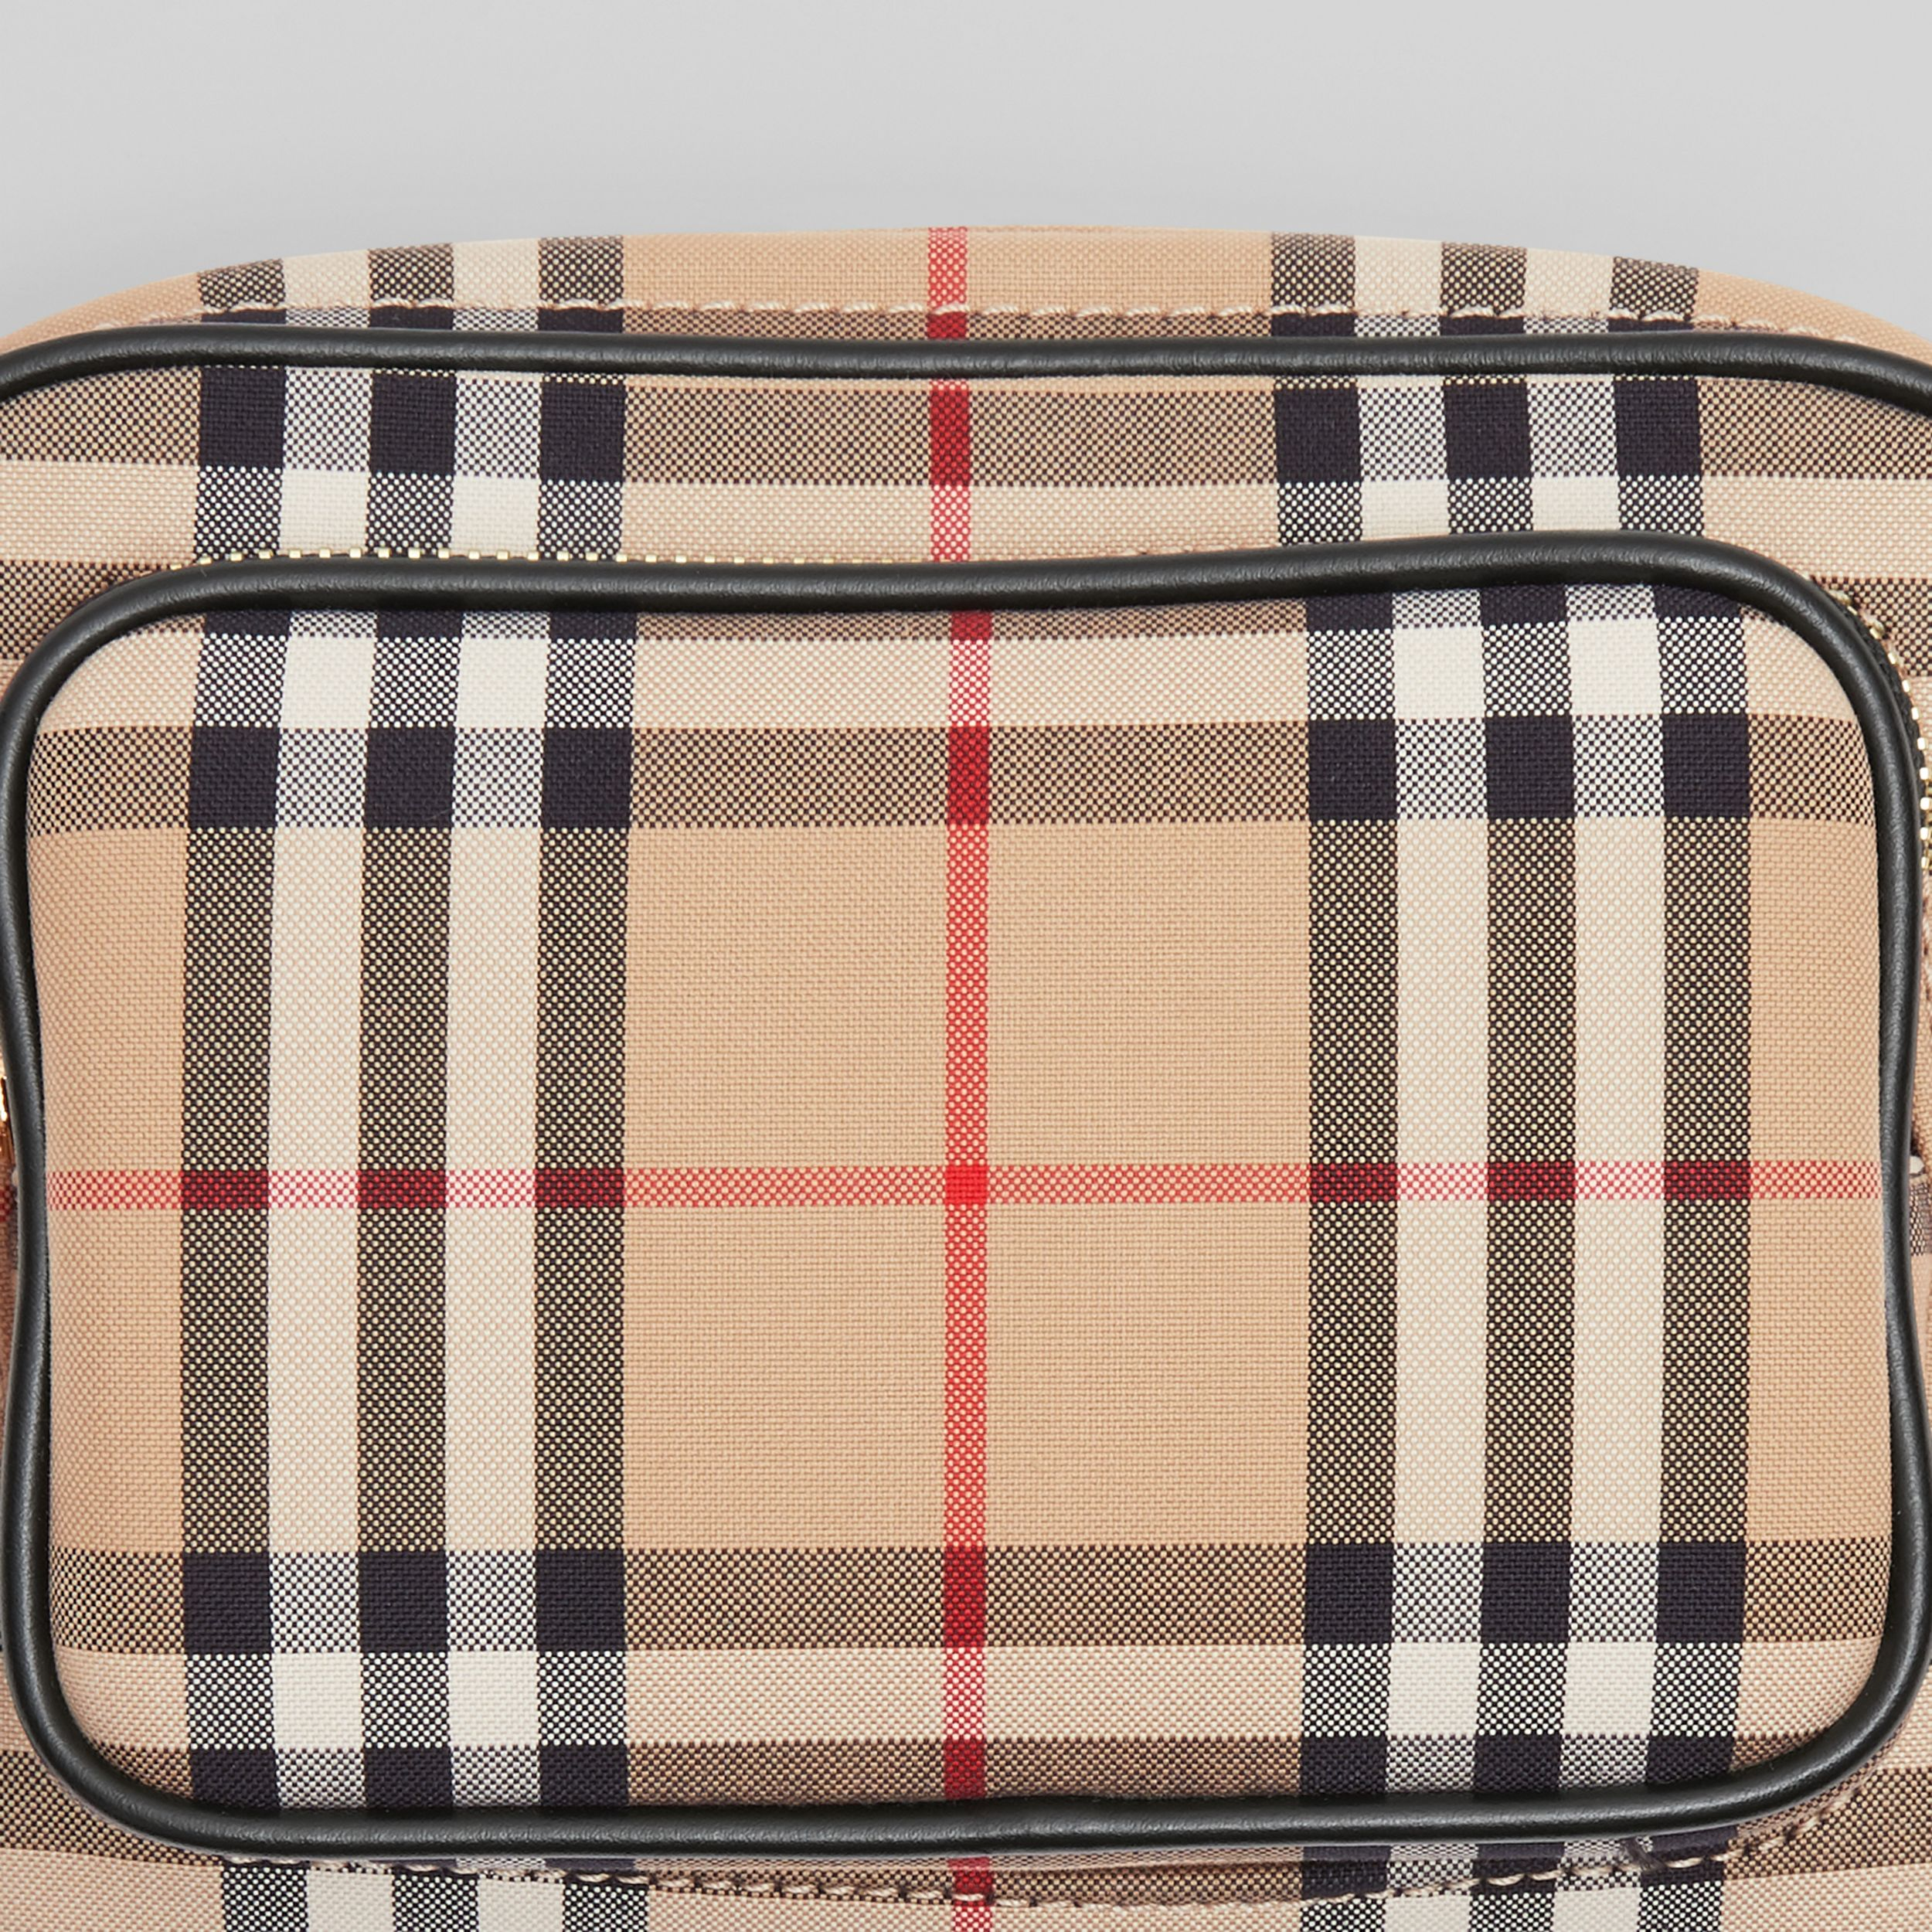 Camera bag in cotone con motivo Vintage check (Beige Archivio) | Burberry - 2